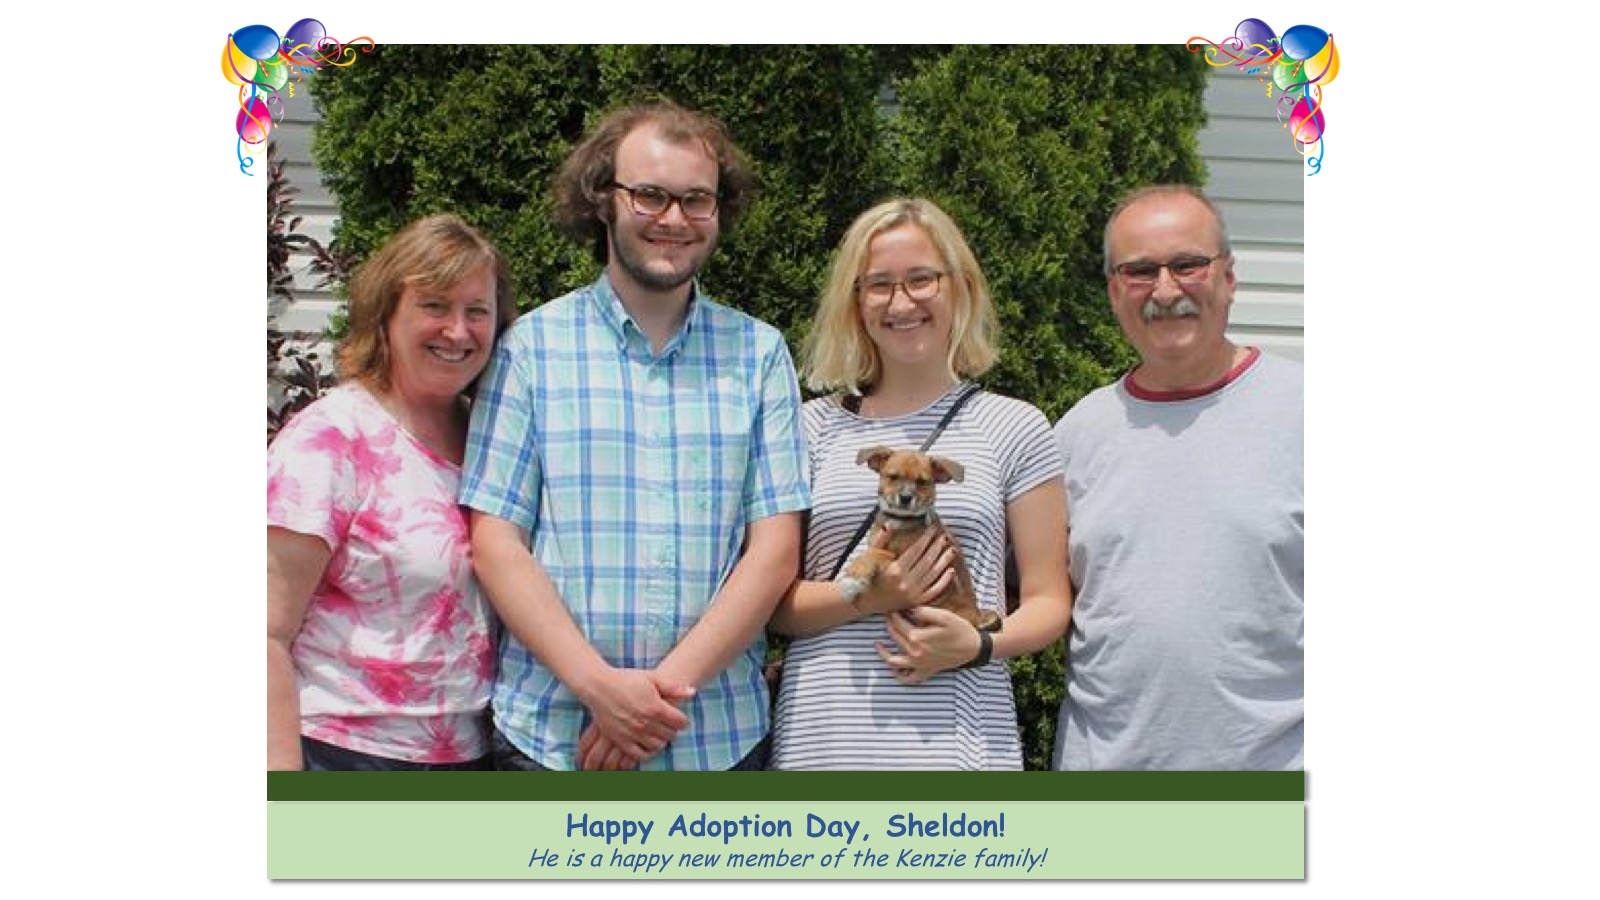 Sheldon_Adoption_Photo71497.jpg